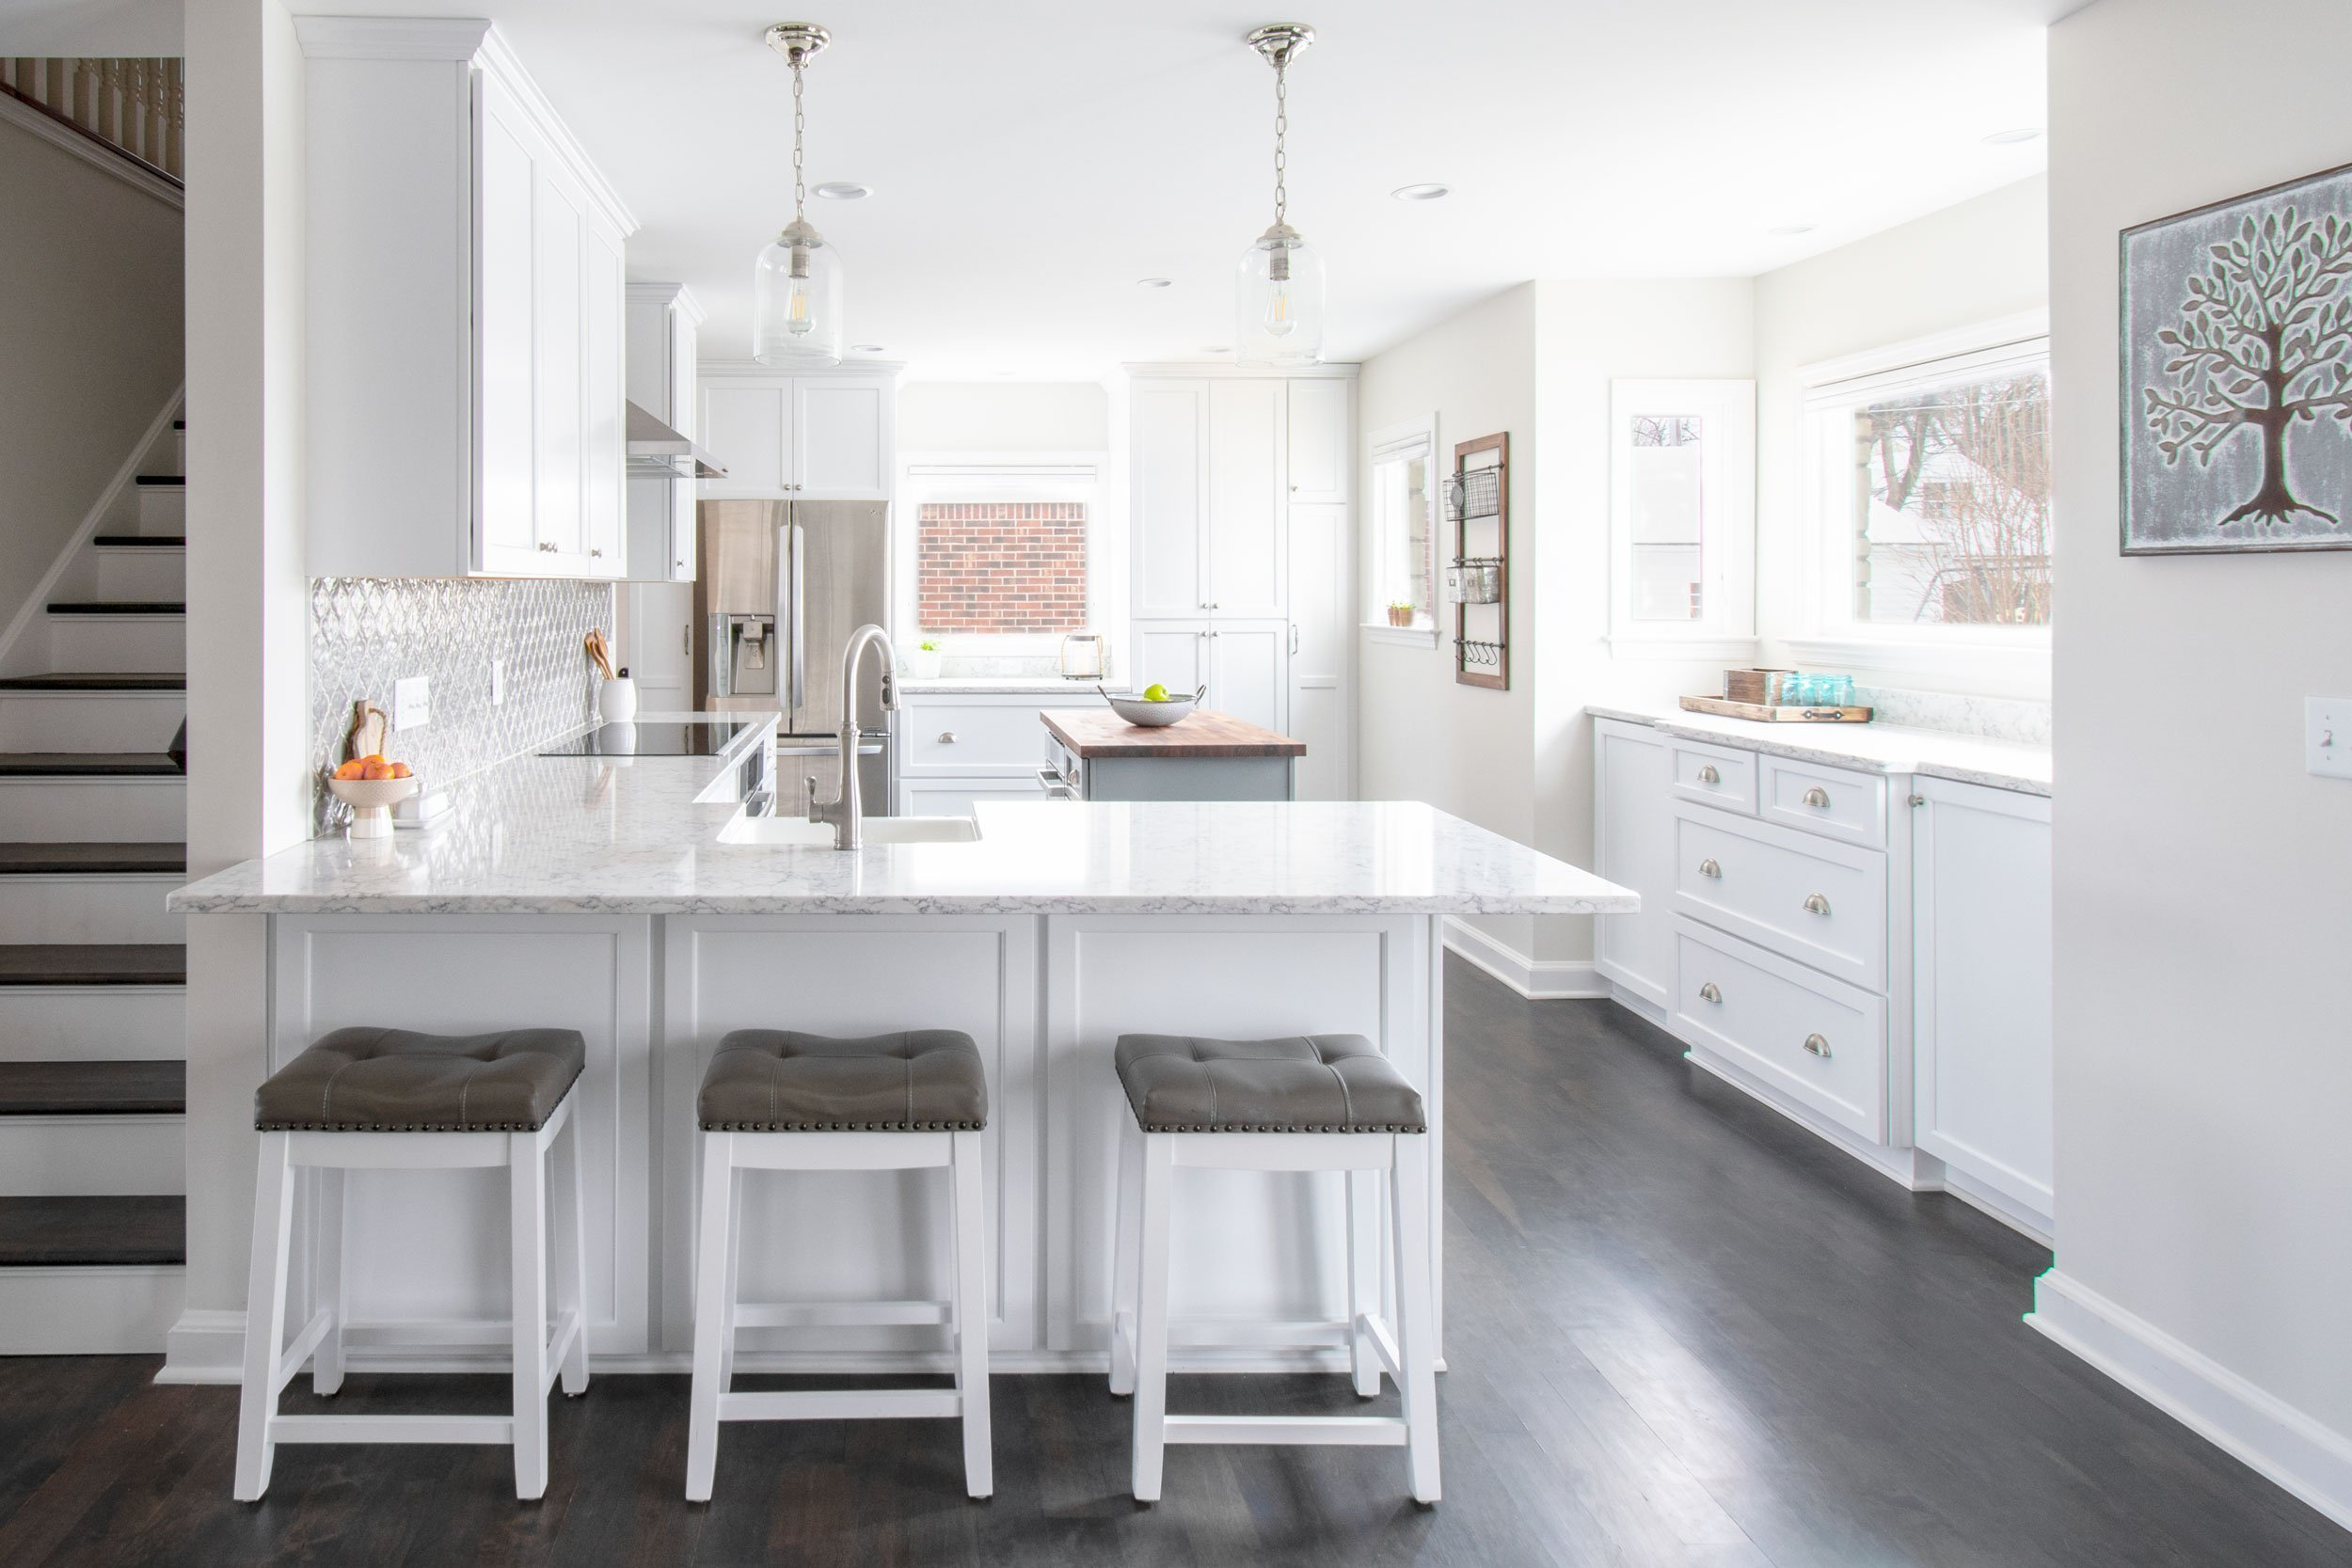 Open concept kitchen with white cabinets and peninsula